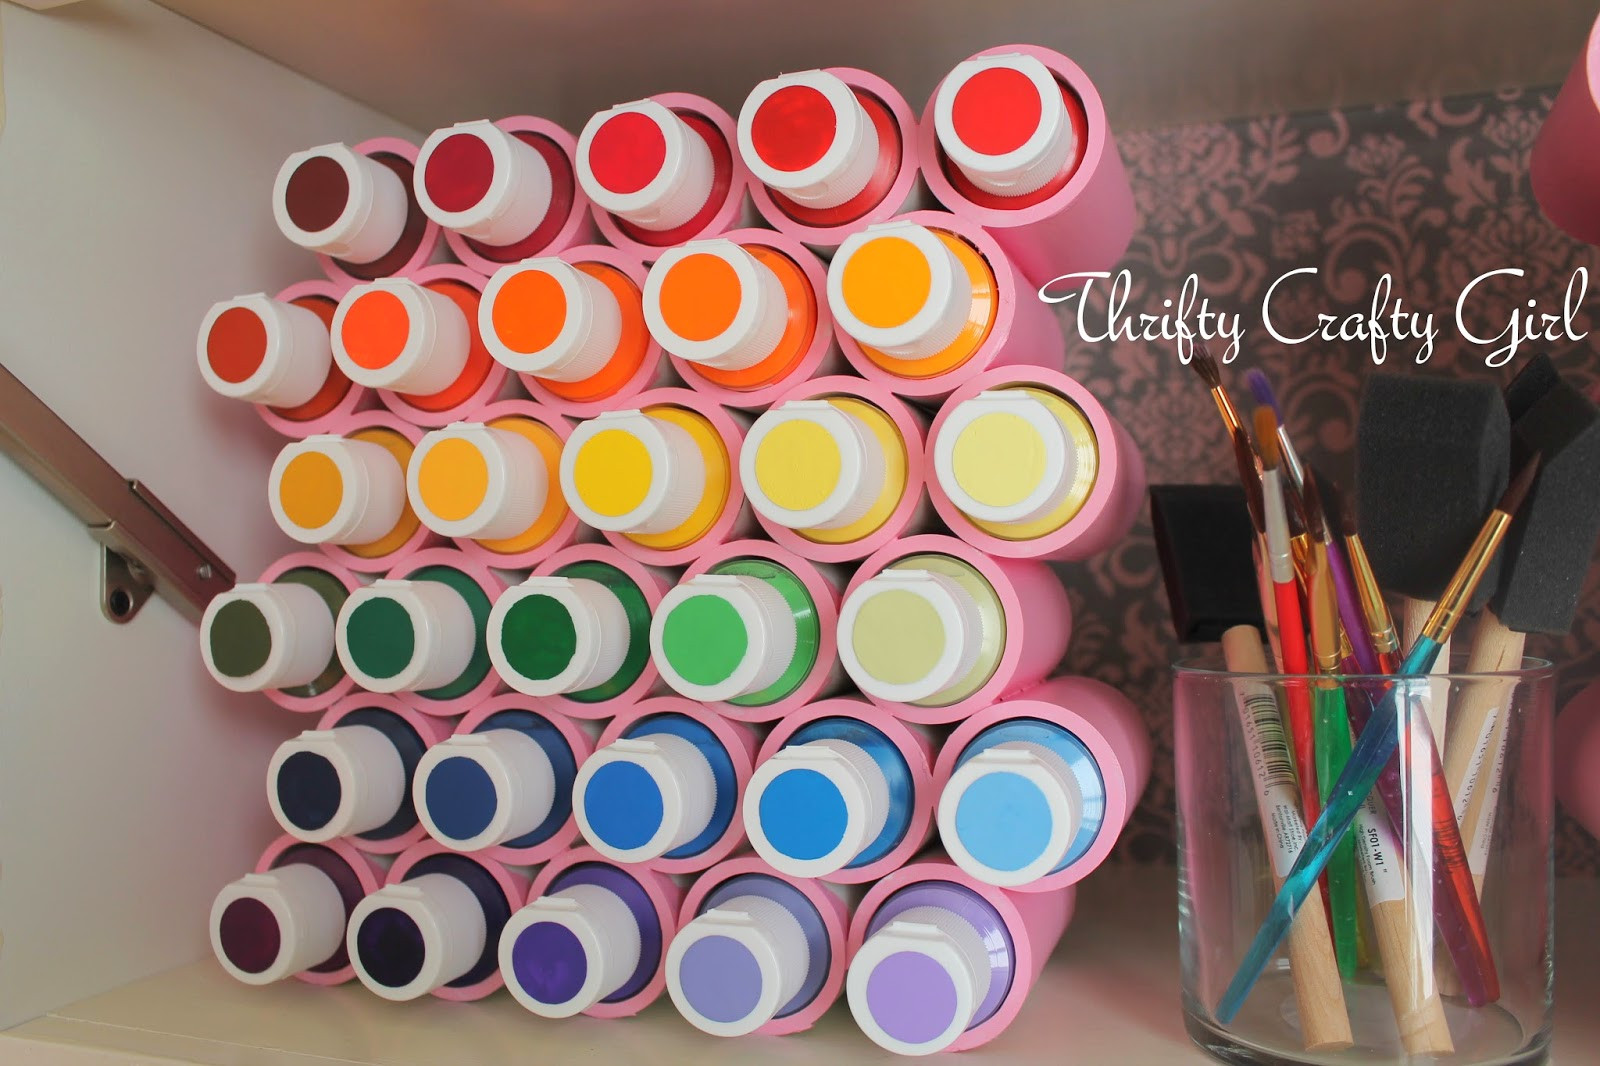 Best ideas about DIY Acrylic Paints . Save or Pin Thrifty Crafty Girl Acrylic Paint Storage Now.